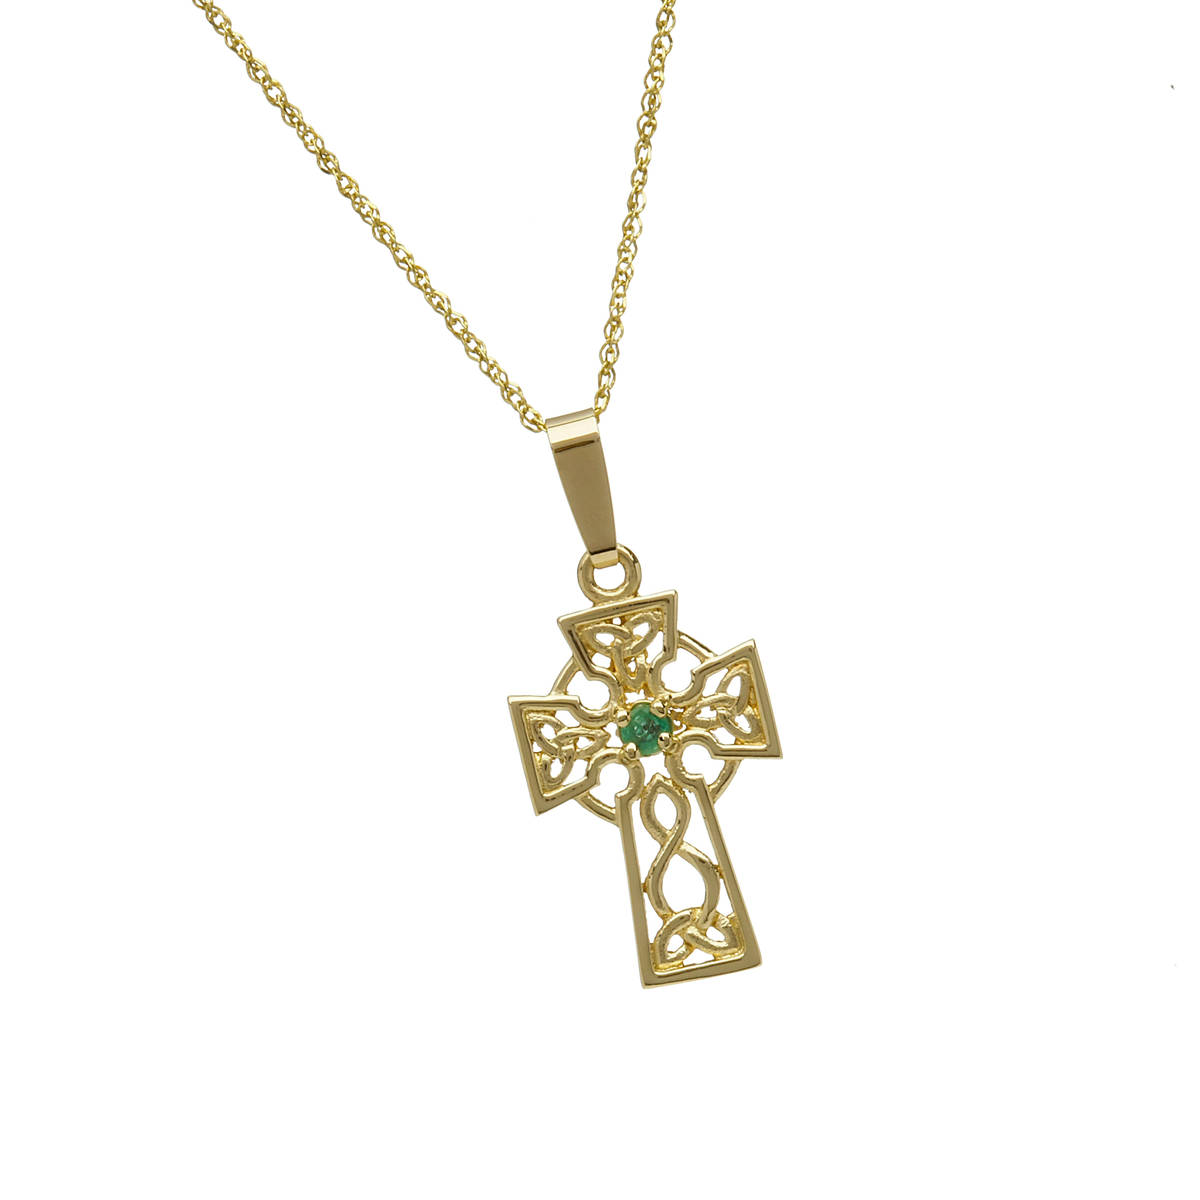 10 carat yellow gold filigree celtic cross pendant with emerald.Don't forget if you want this lovely piece in white or rose gold instead of yellow gold,just indicate your preferred gold in the comment box at checkout.